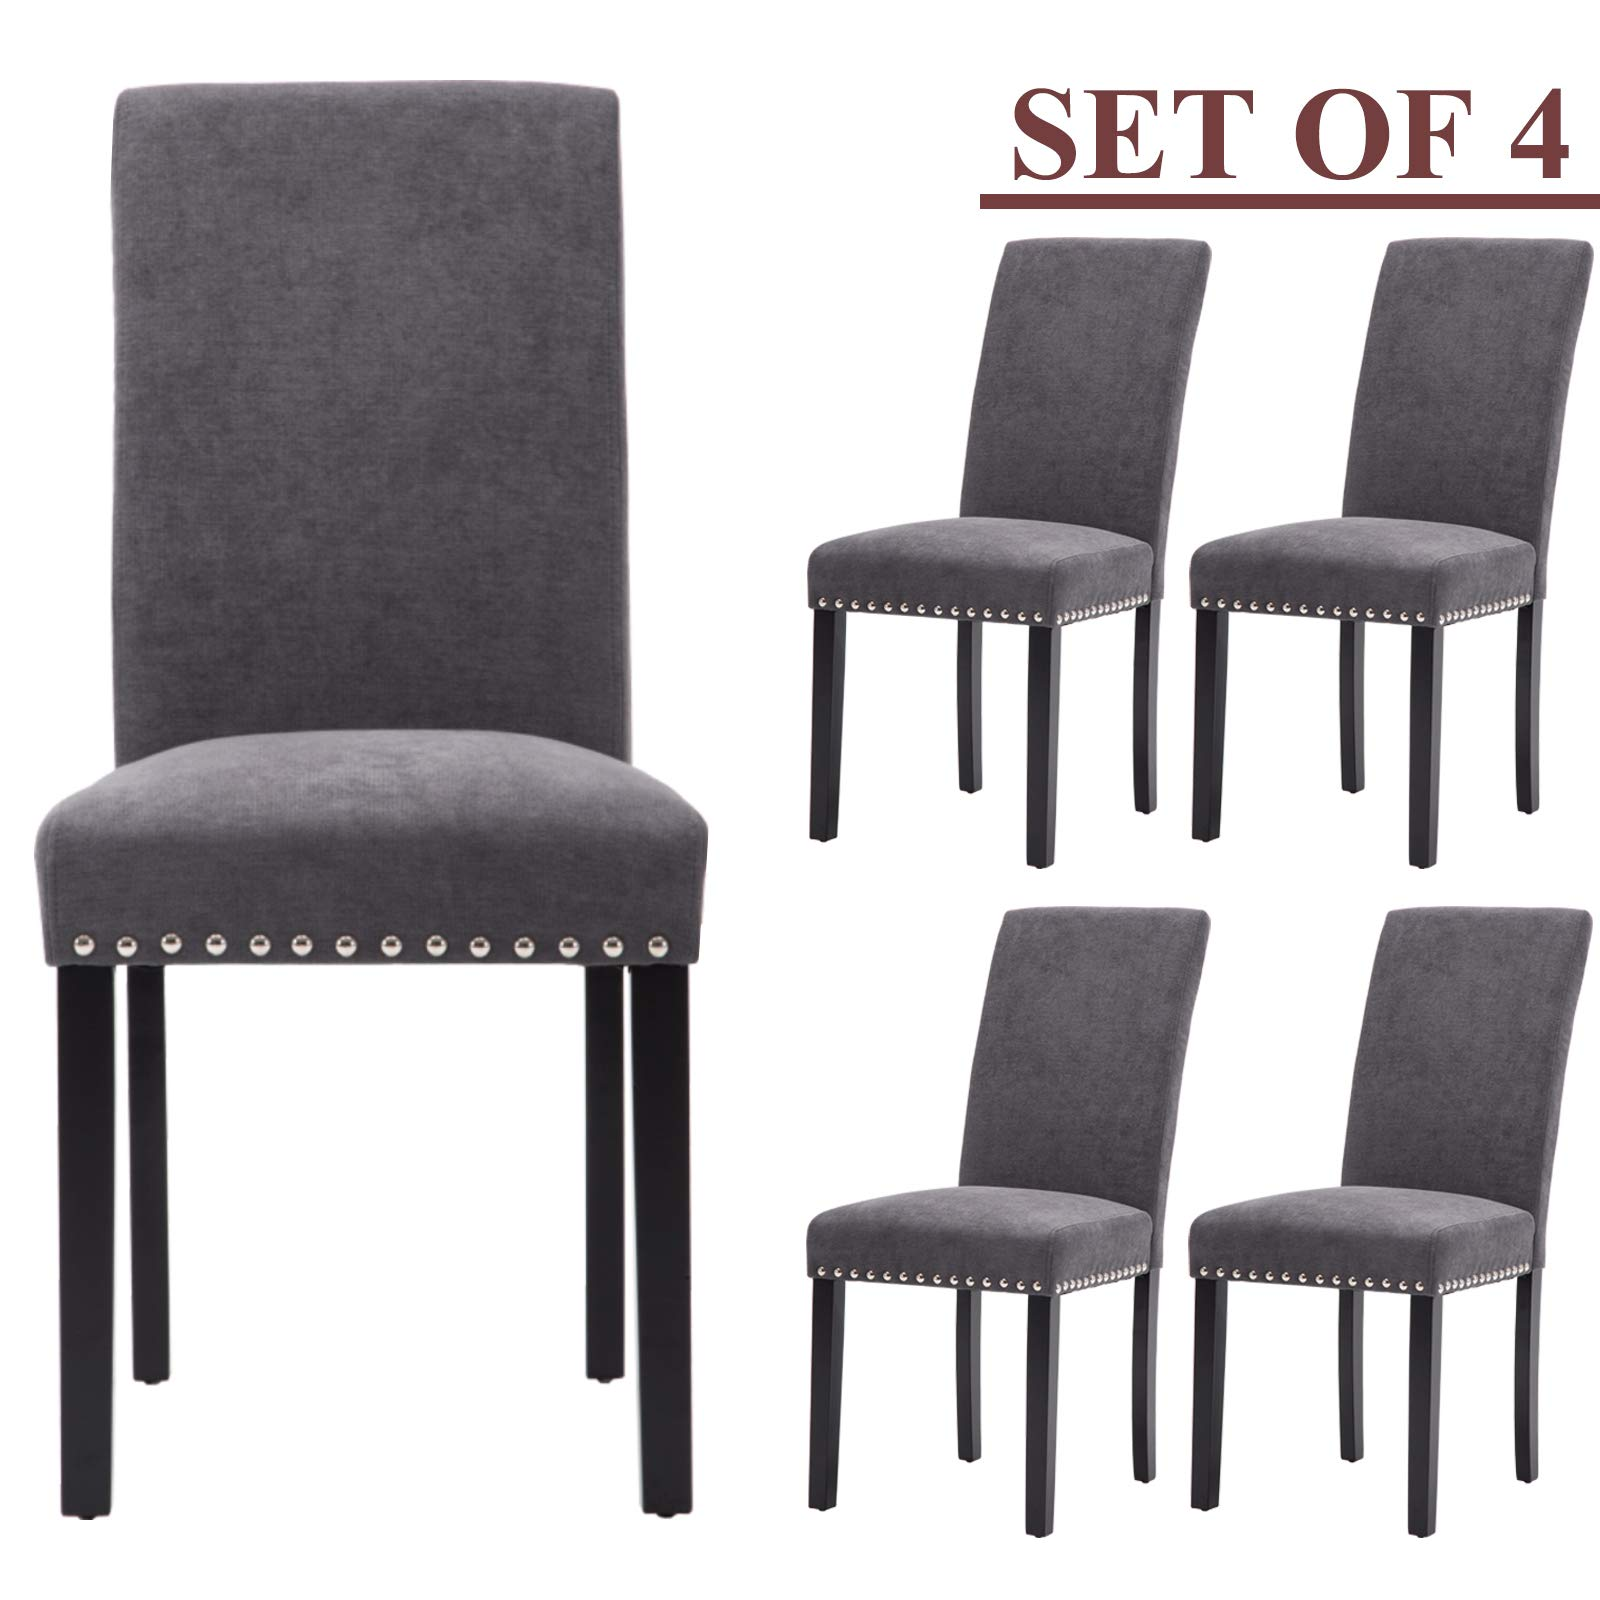 Upholstered Dining Chairs Padded Parson Chair with Silver Nails and Solid Wood Legs Set of 4 (Gray) by GOTMINSI